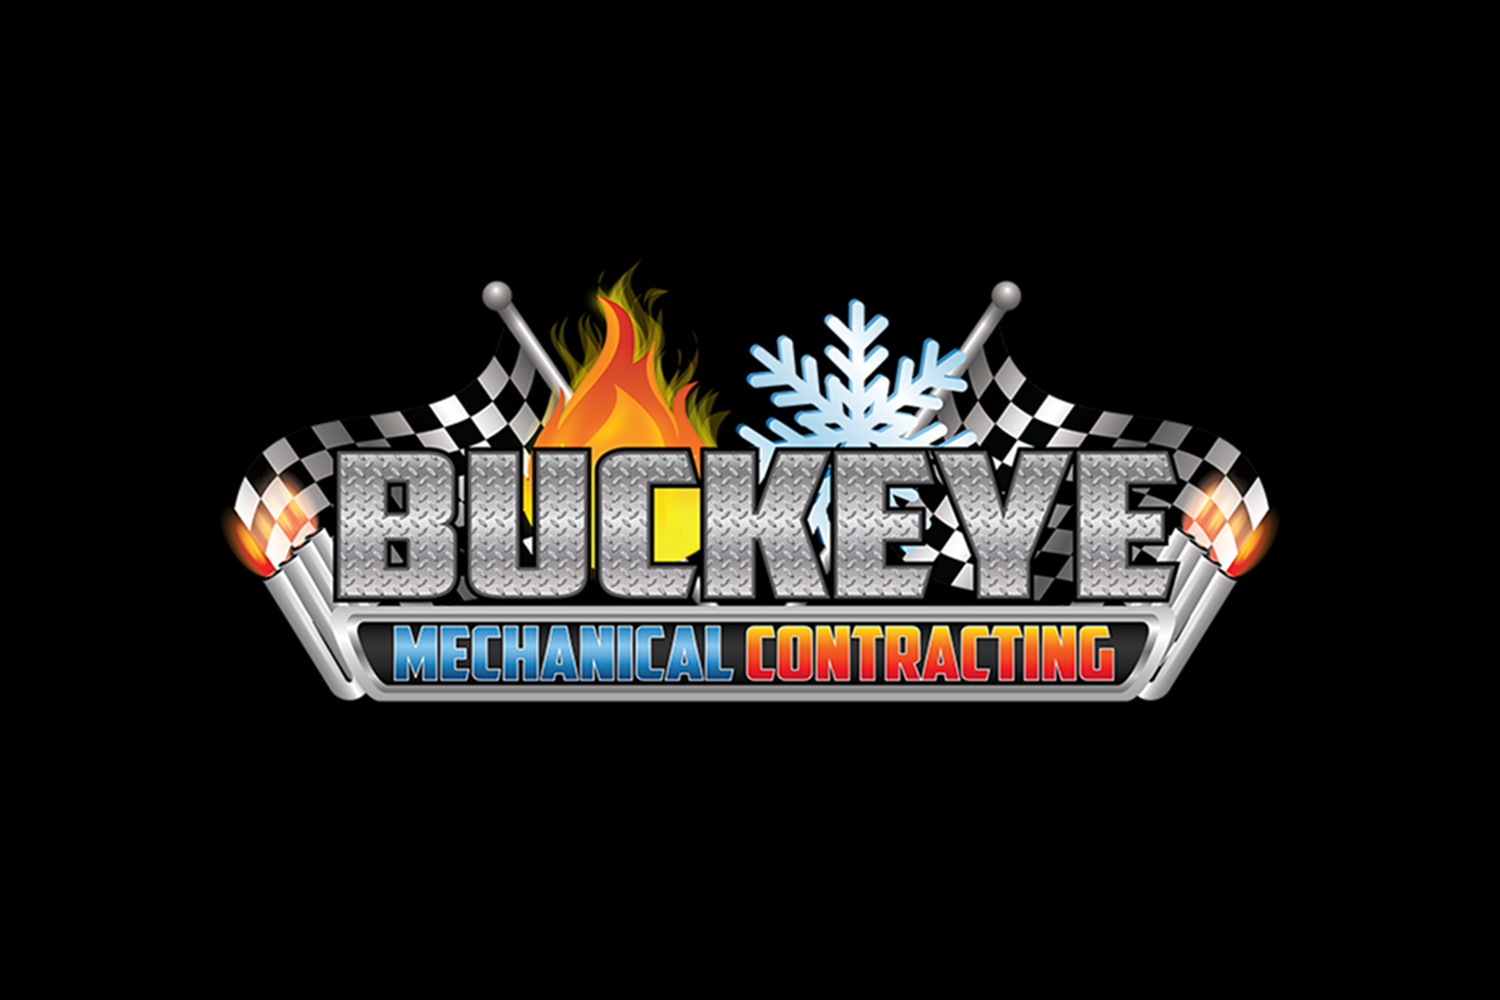 The official logo of Buckeye Mechanical of Calcutta, Ohio.